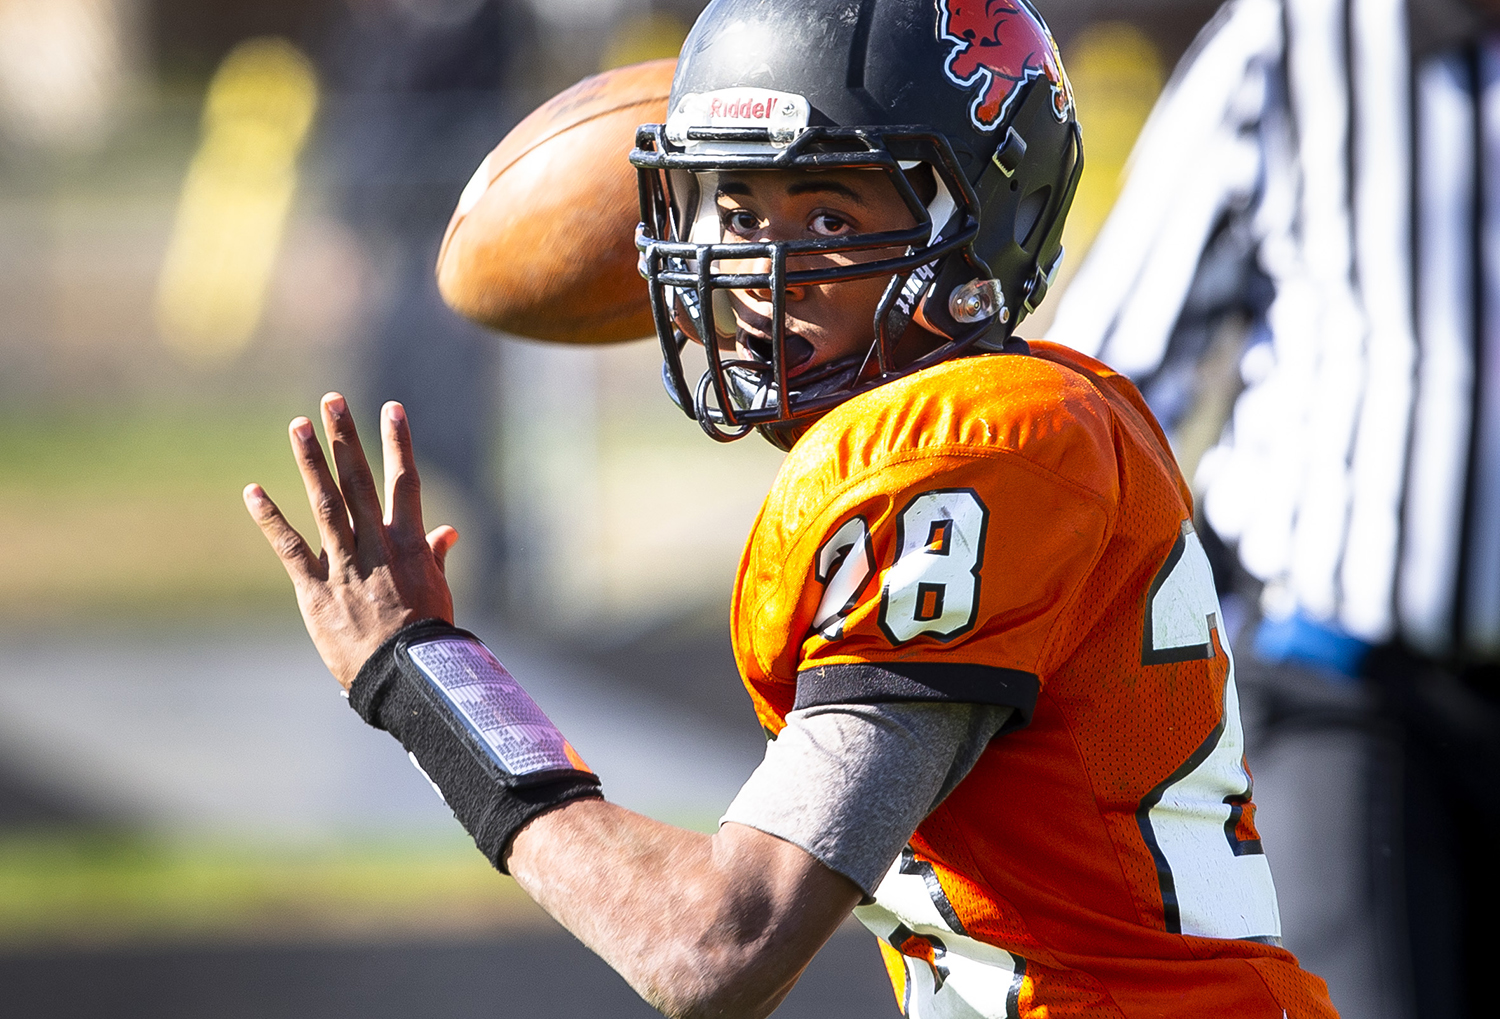 Lanphier quarterback A'Tejon Lee looks for an open receiver at Memorial Stadium Saturday, Oct. 20, 2018  in Springfield, Ill. [Rich Saal/The State Journal-Register]